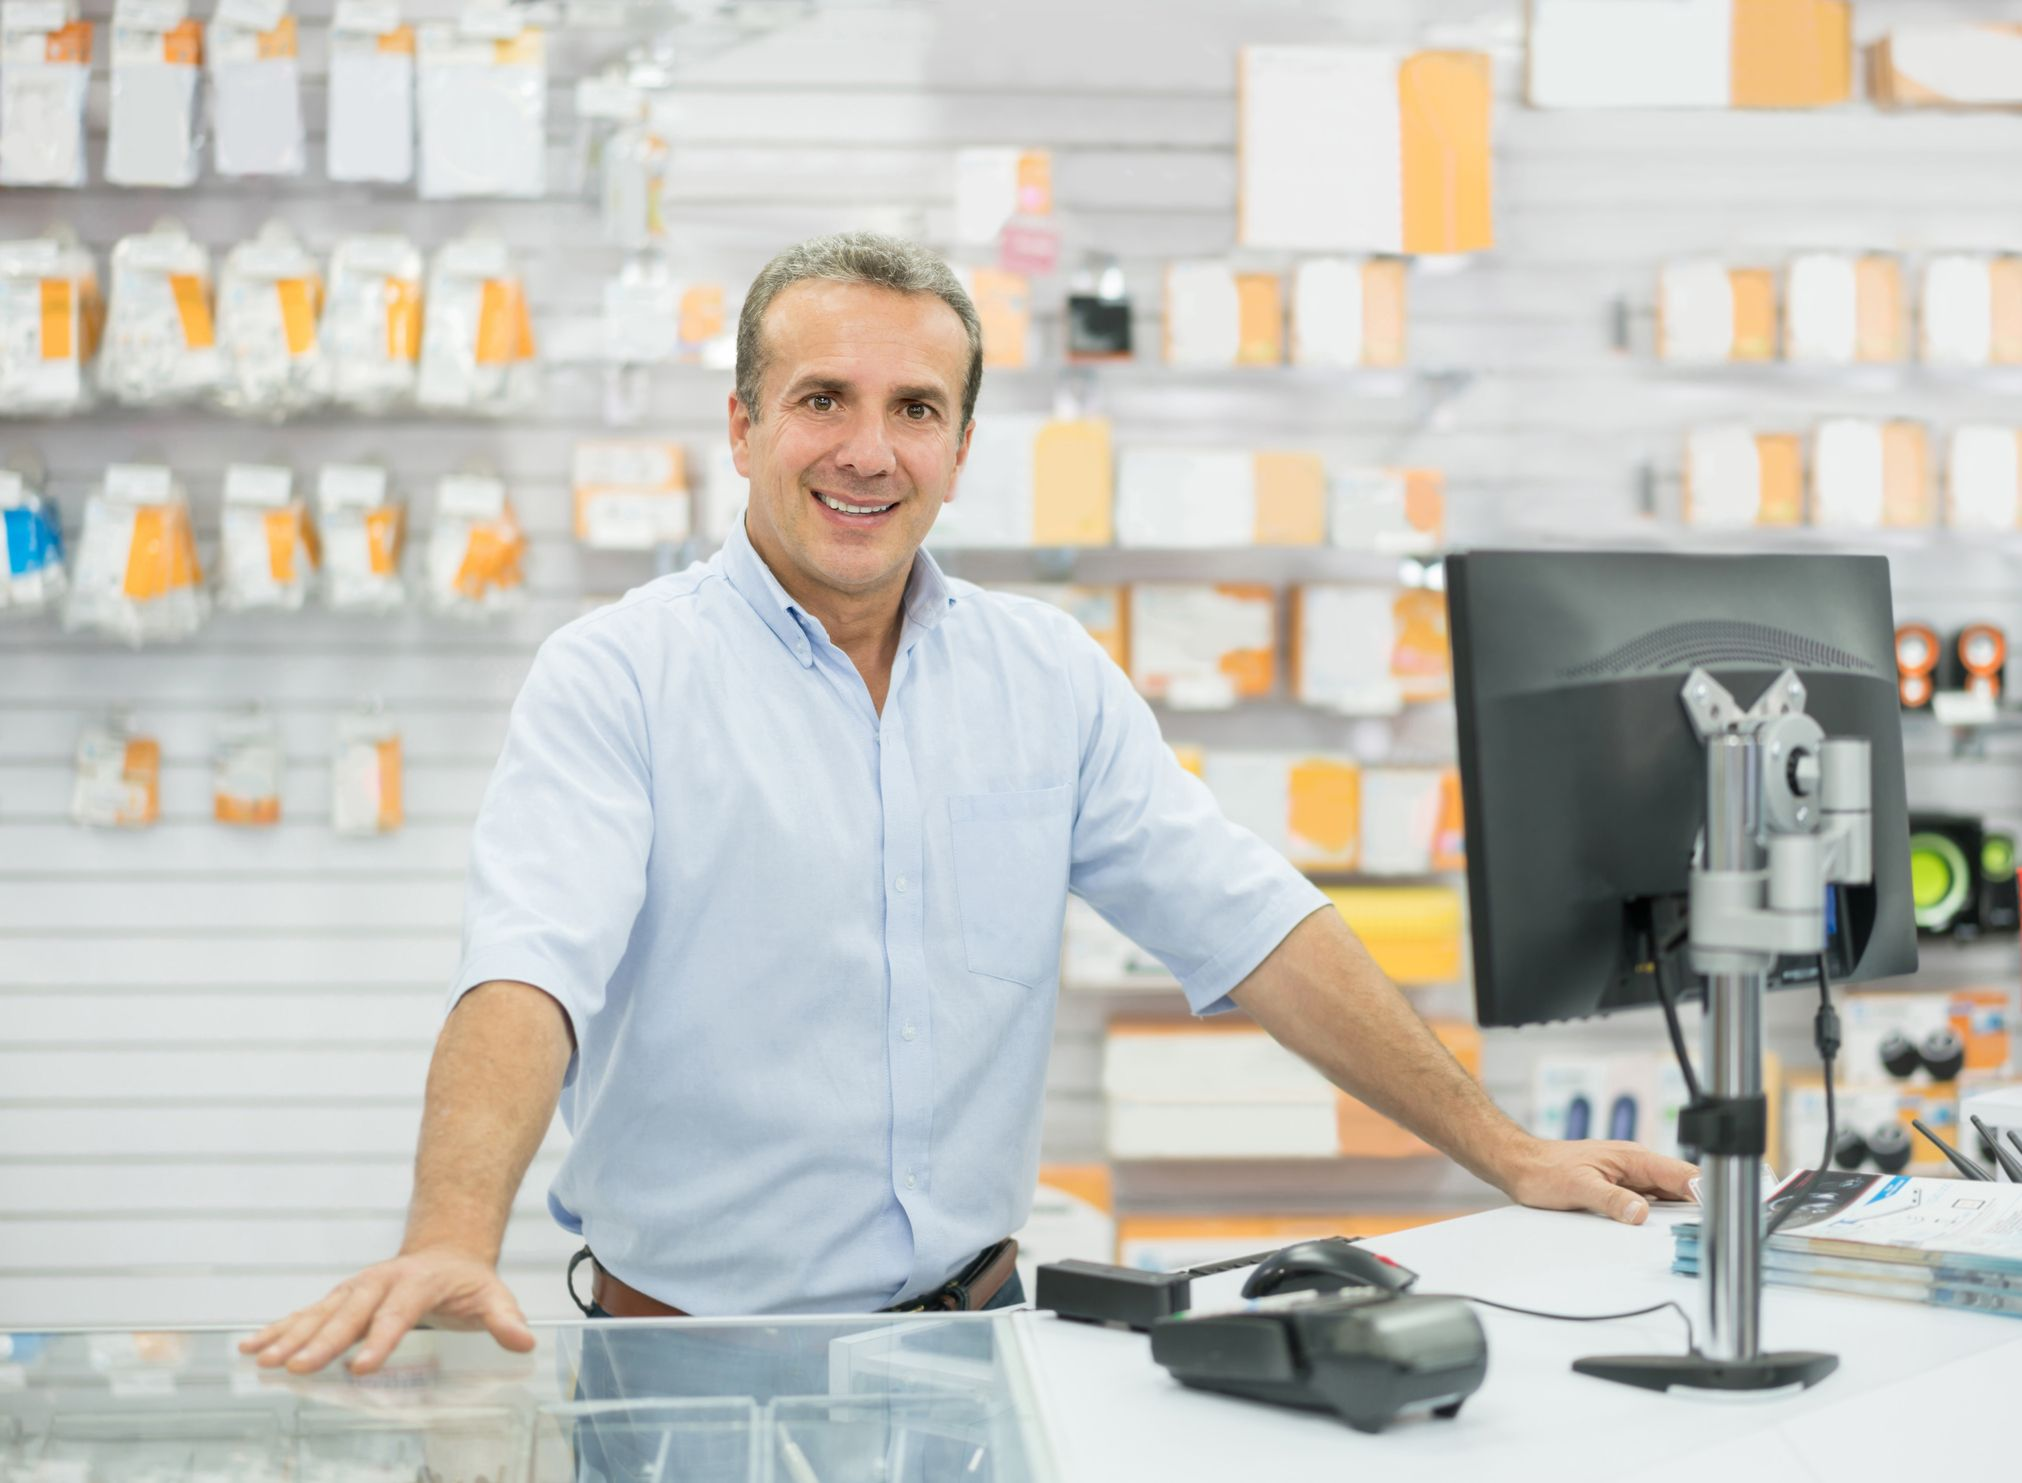 Casual man running an electronics store and smiling behind the counter